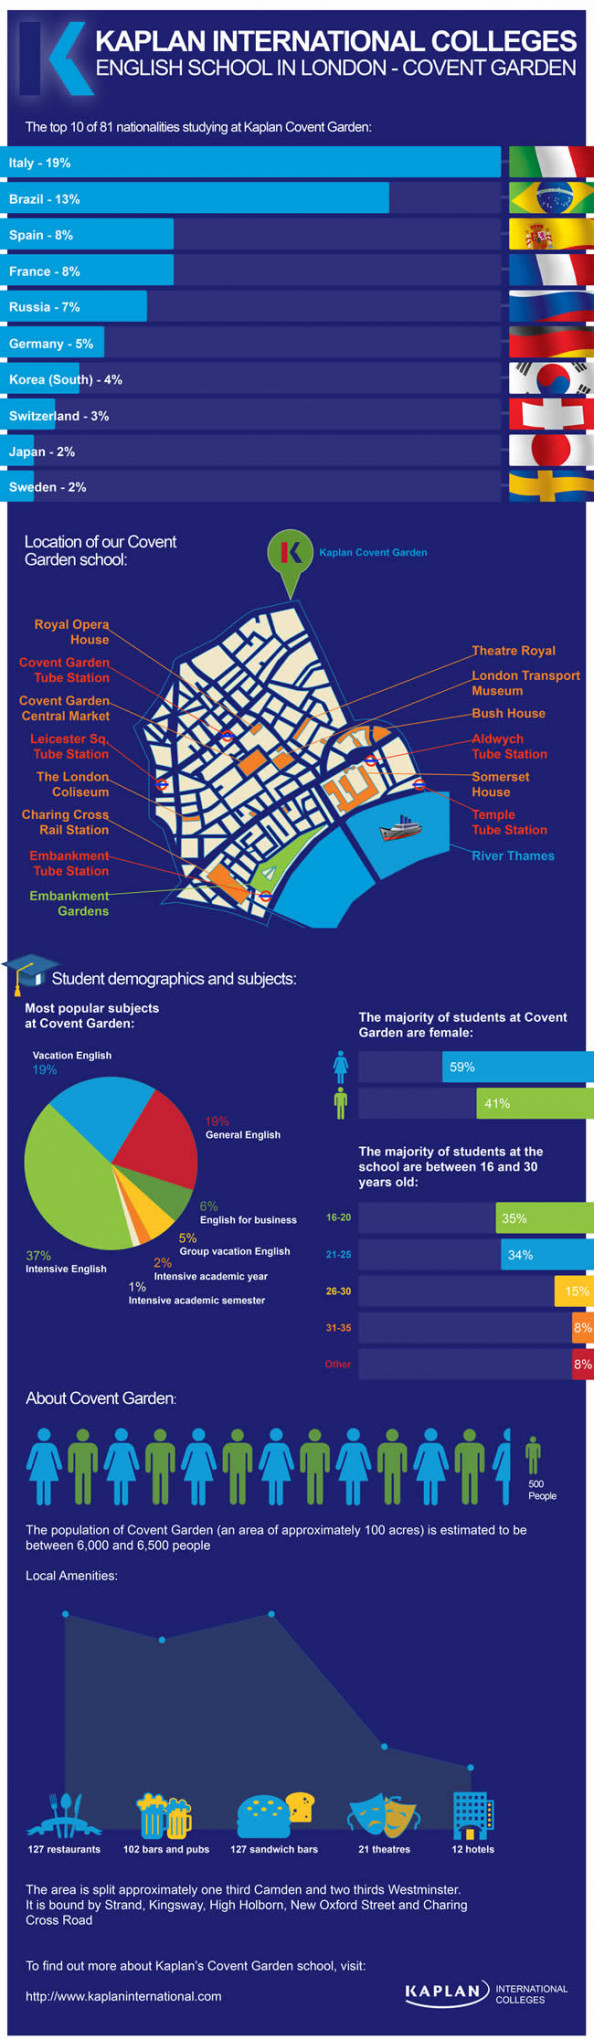 Kaplan International Covent Garden School Infographic